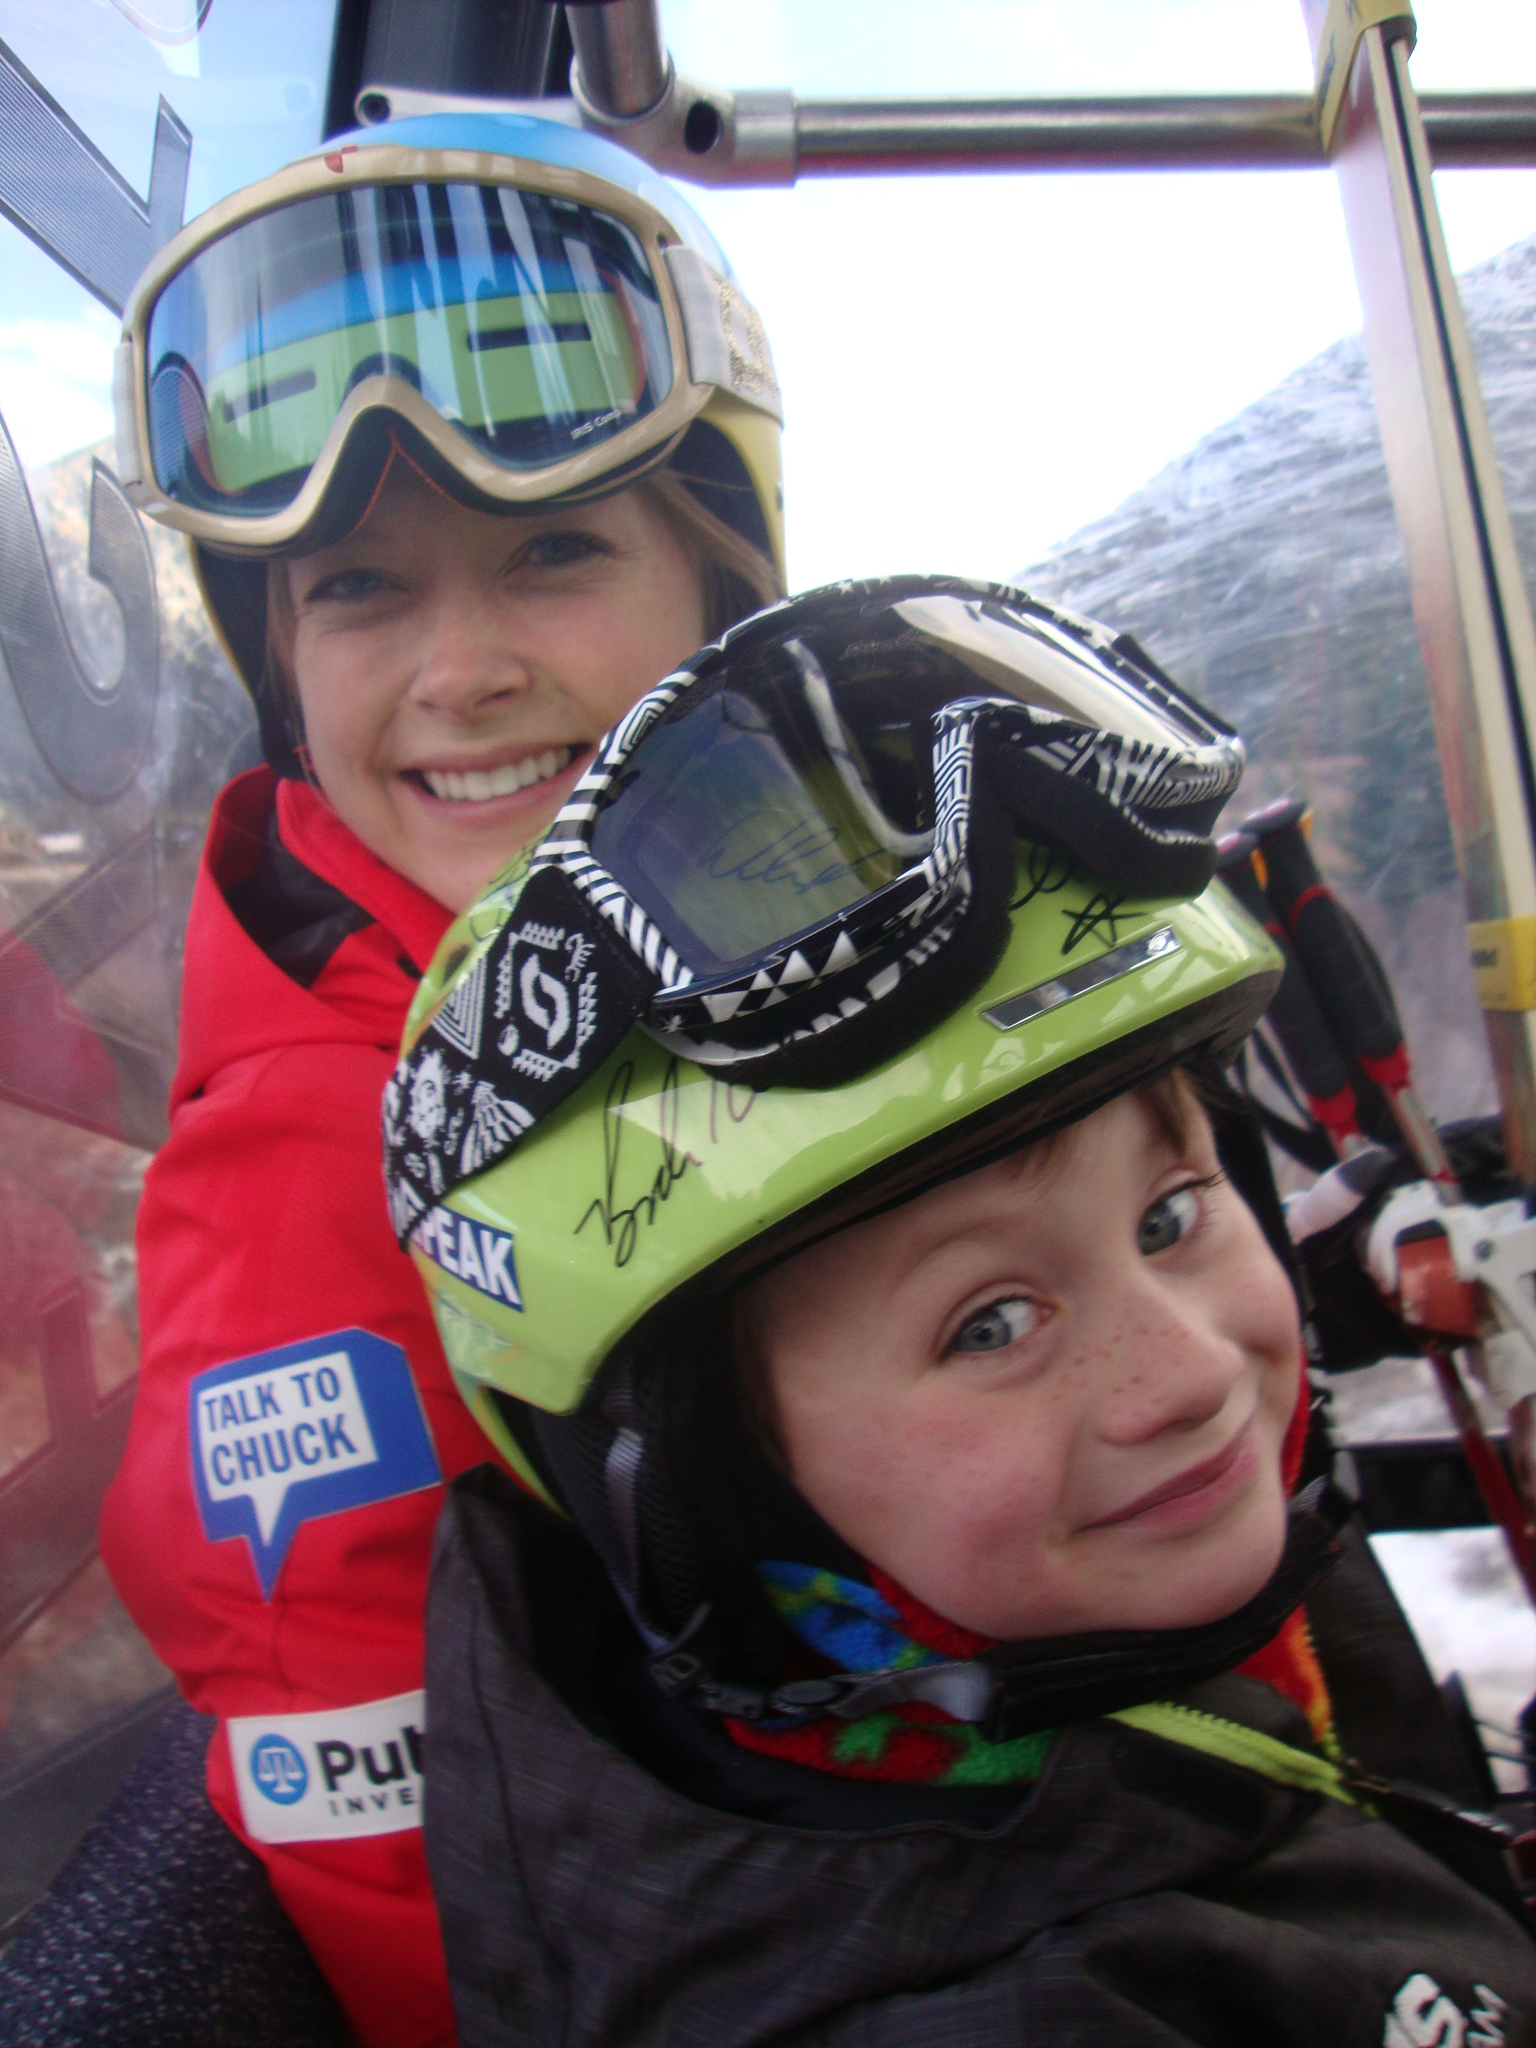 First Tracks Sweepstakes winner Max hanging out with Kaylin - Blog